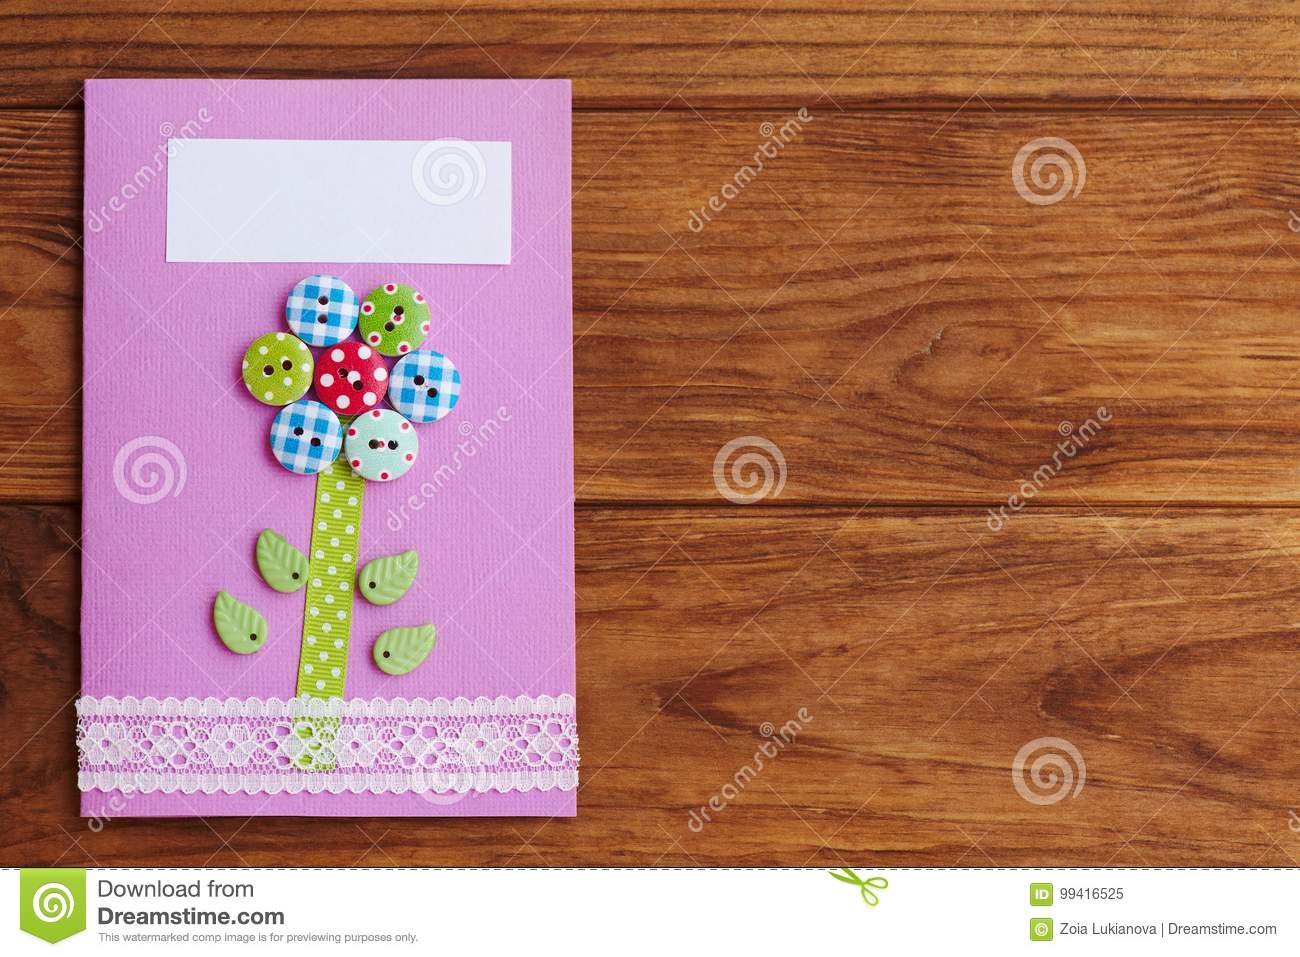 Wondrous Mother S Day Or Birthday Greeting Card With Flower On A Wooden Funny Birthday Cards Online Alyptdamsfinfo